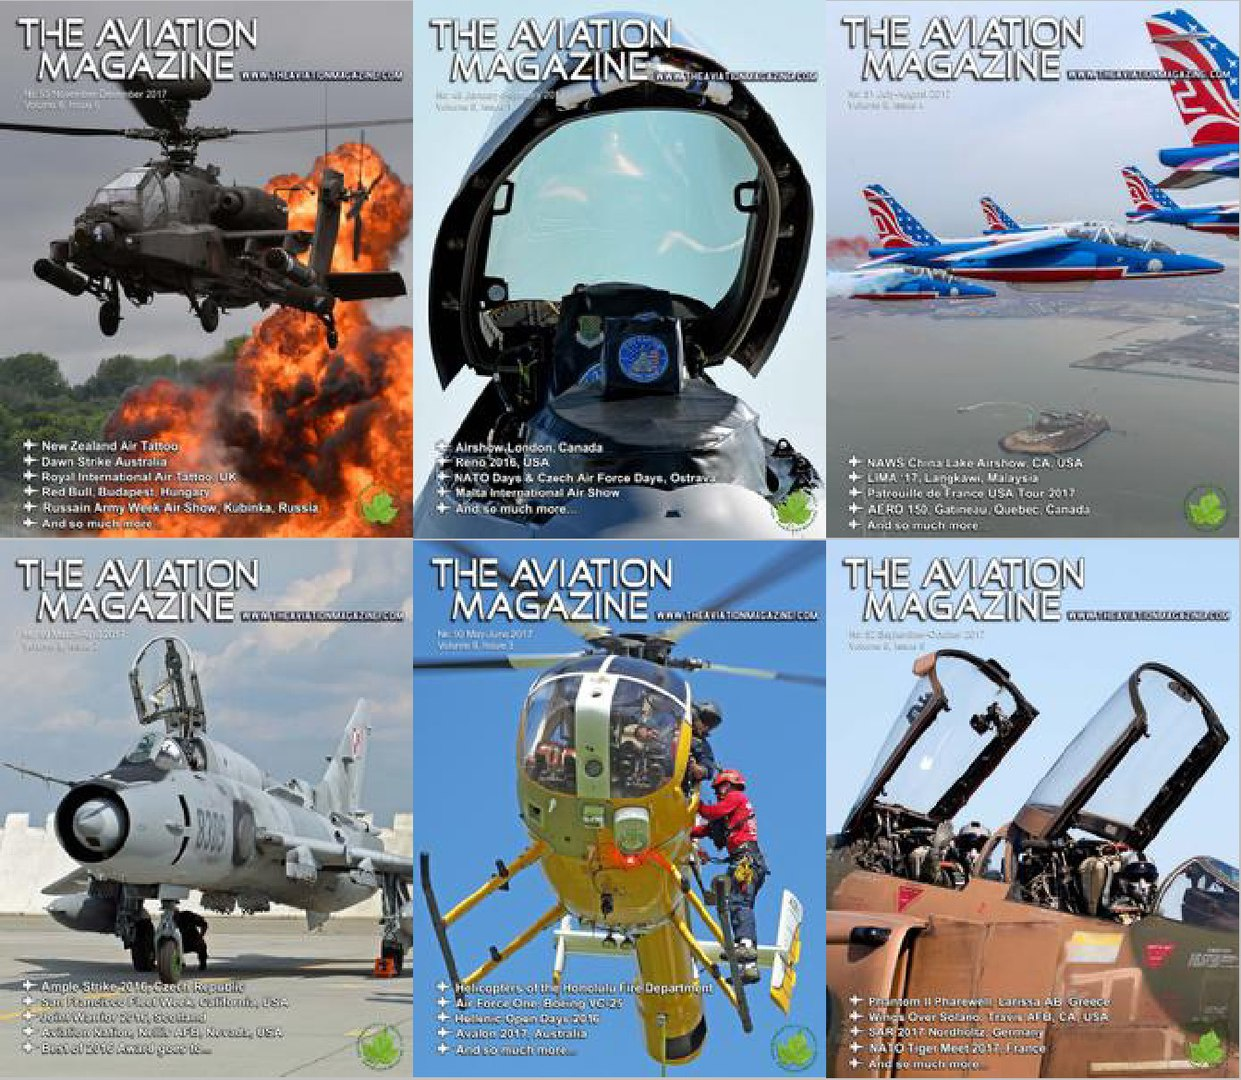 The Aviation Magazine - 2017 Full Year Issues Collection